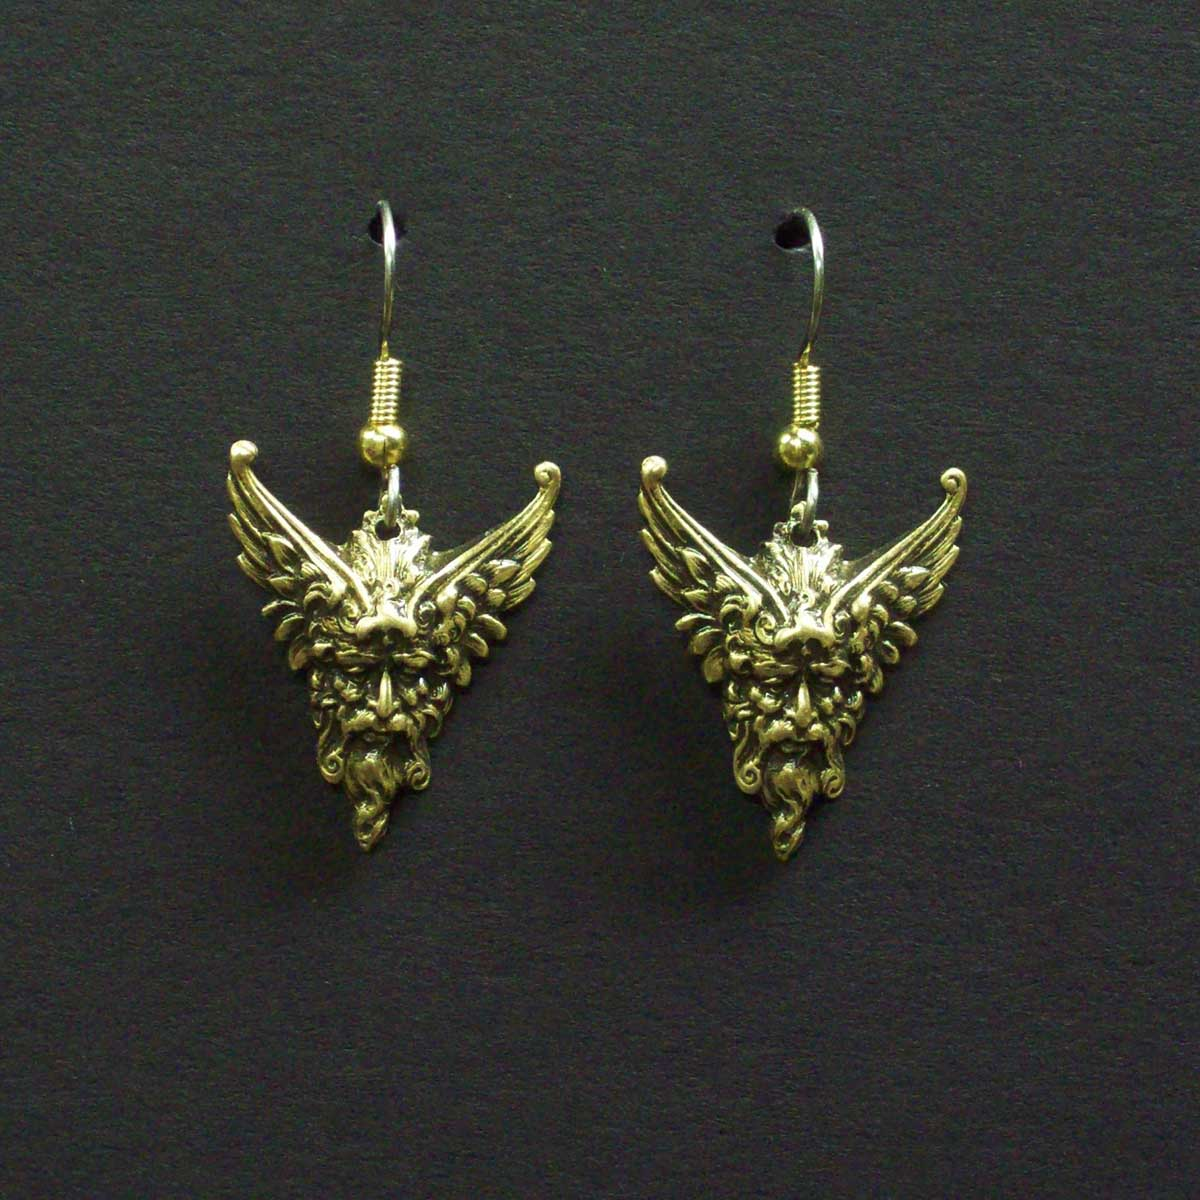 Winged Man's Head Dangle Earrings